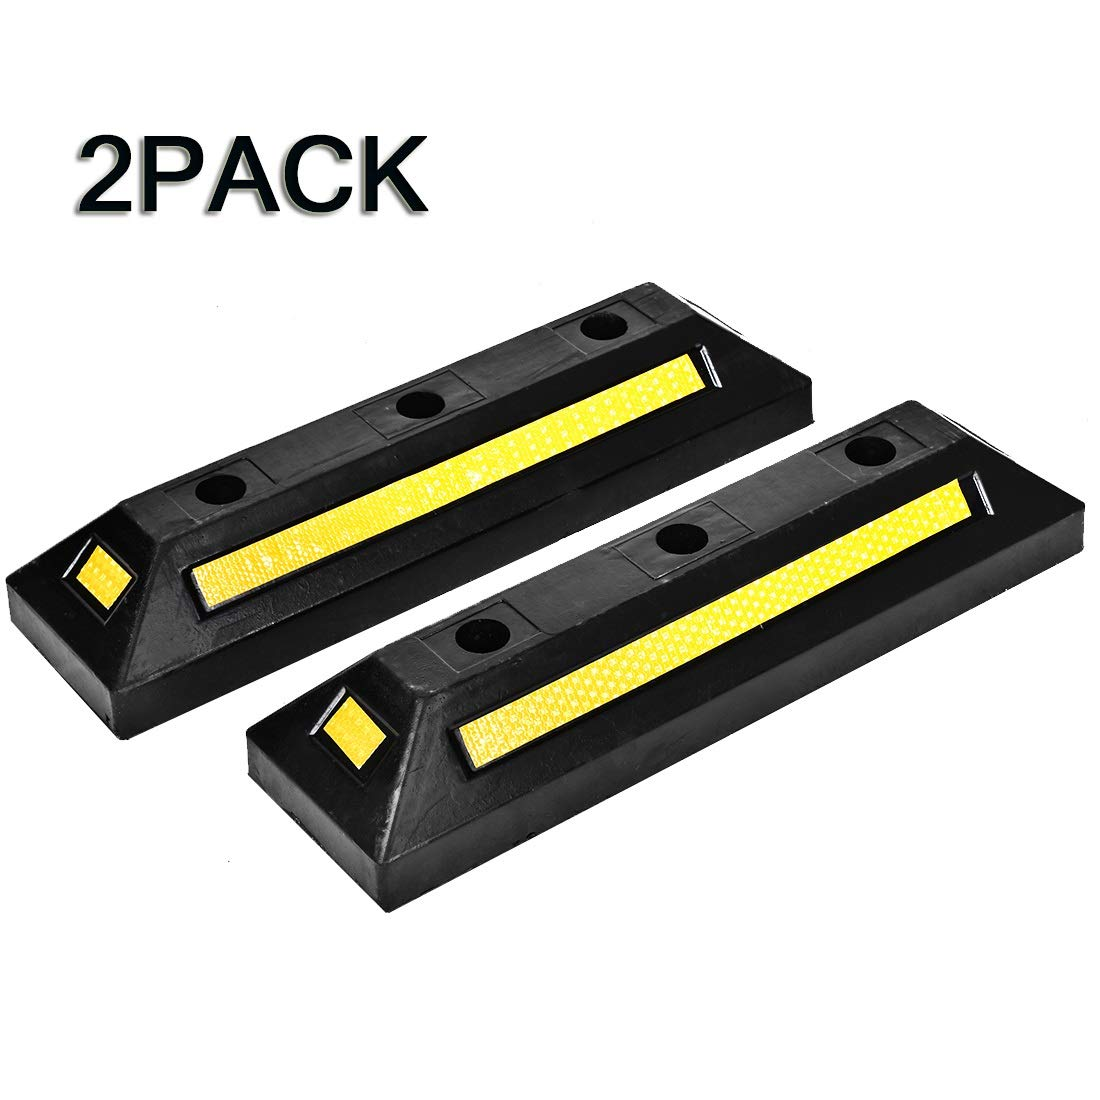 Grepatio Parking Stopper for Garage Floor, Heavy Duty Rubber Parking Guide Parking Curbs, Car Garage Wheel Stop Stoppers- 2 Pack Professional Grade 21.4'' x 5.9'' x 3.6'' by Grepatio